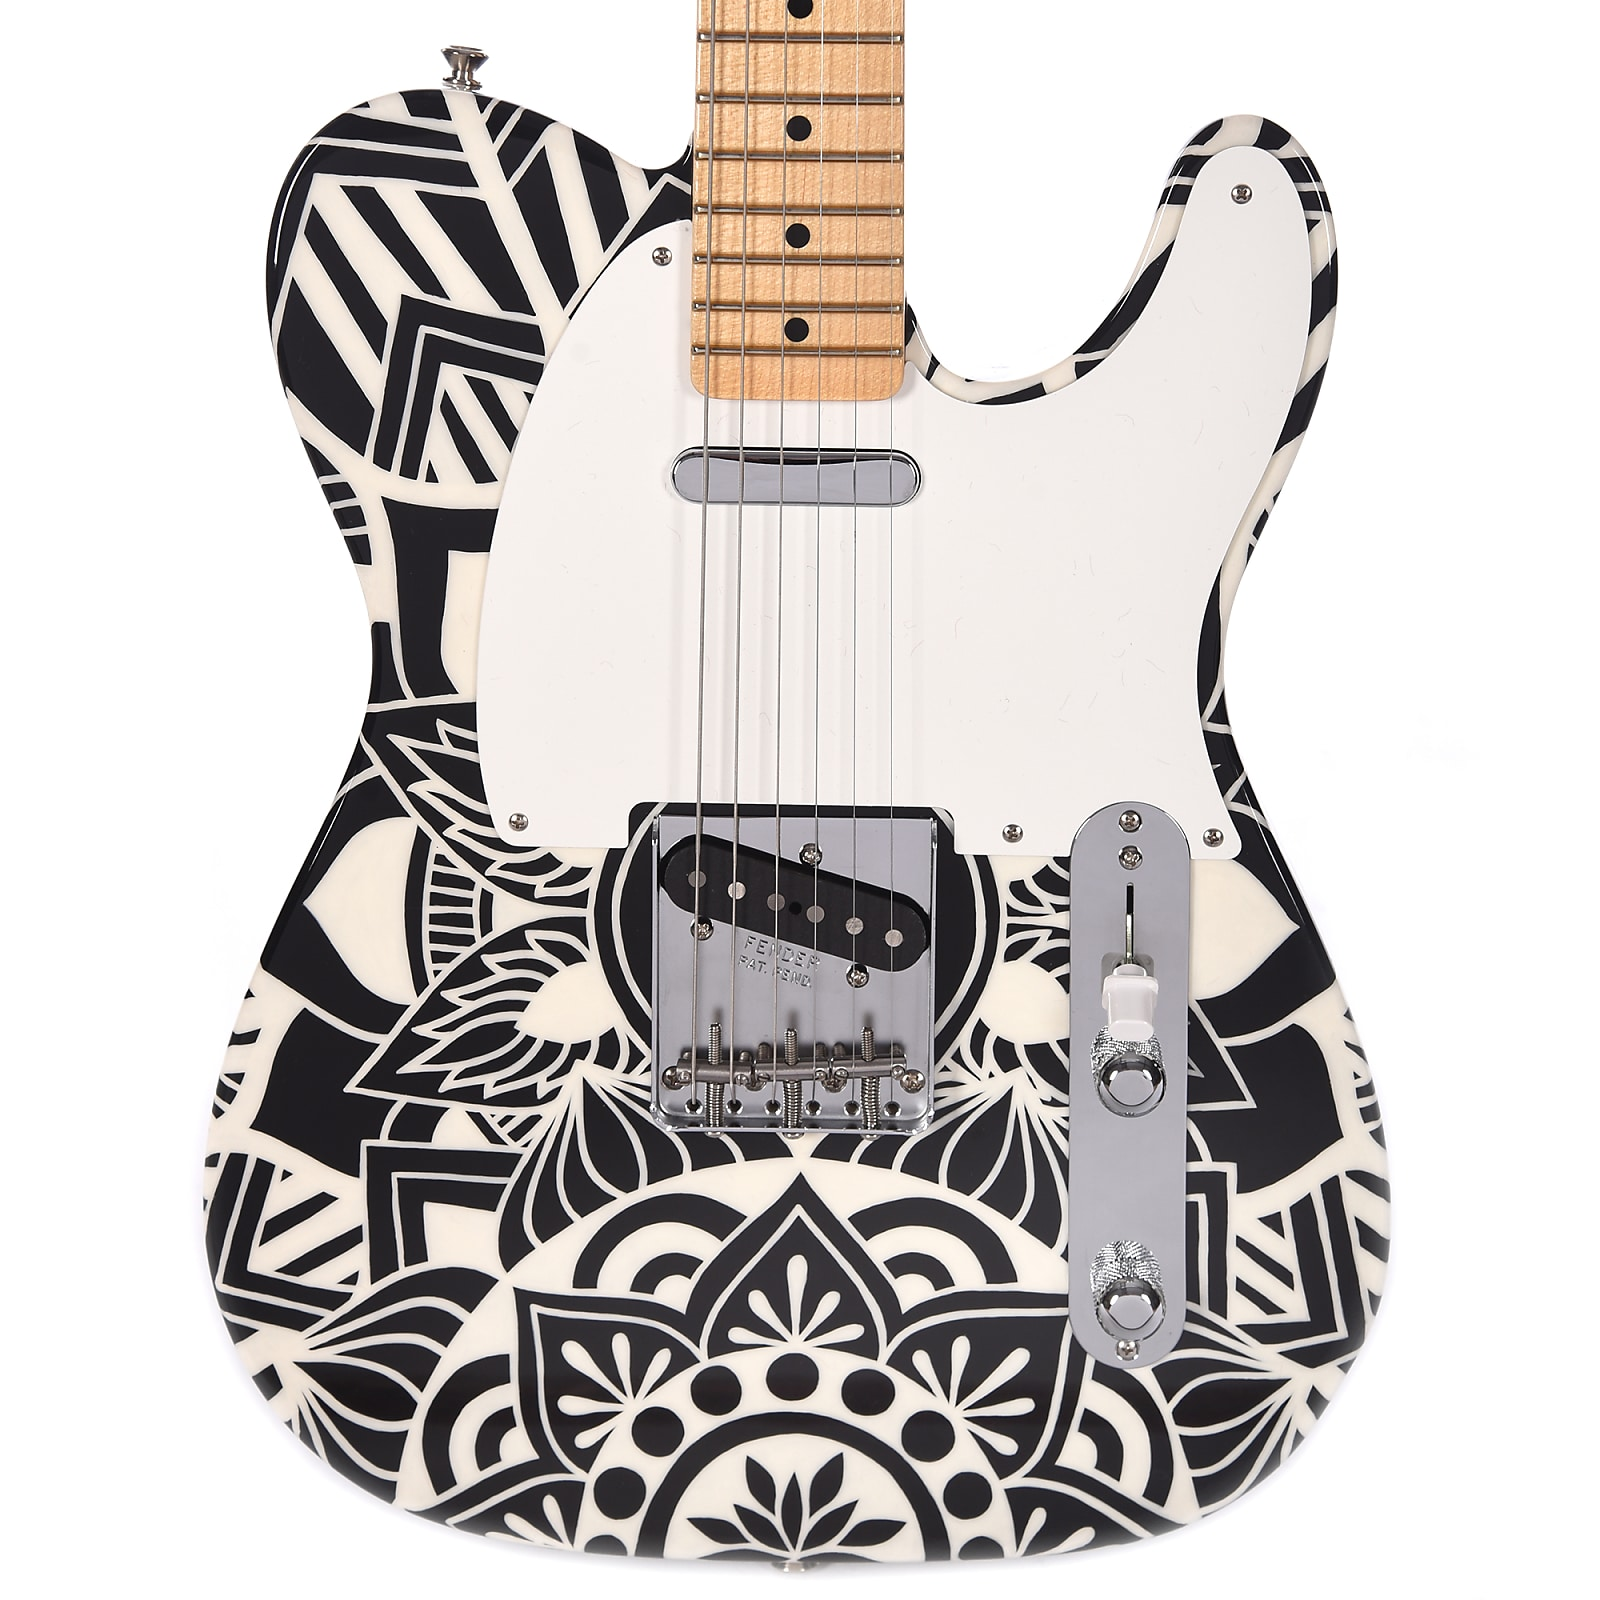 Fender Custom Shop 1954 Telecaster NOS Master Built by Greg Fessler &  Painted by Madison Roy